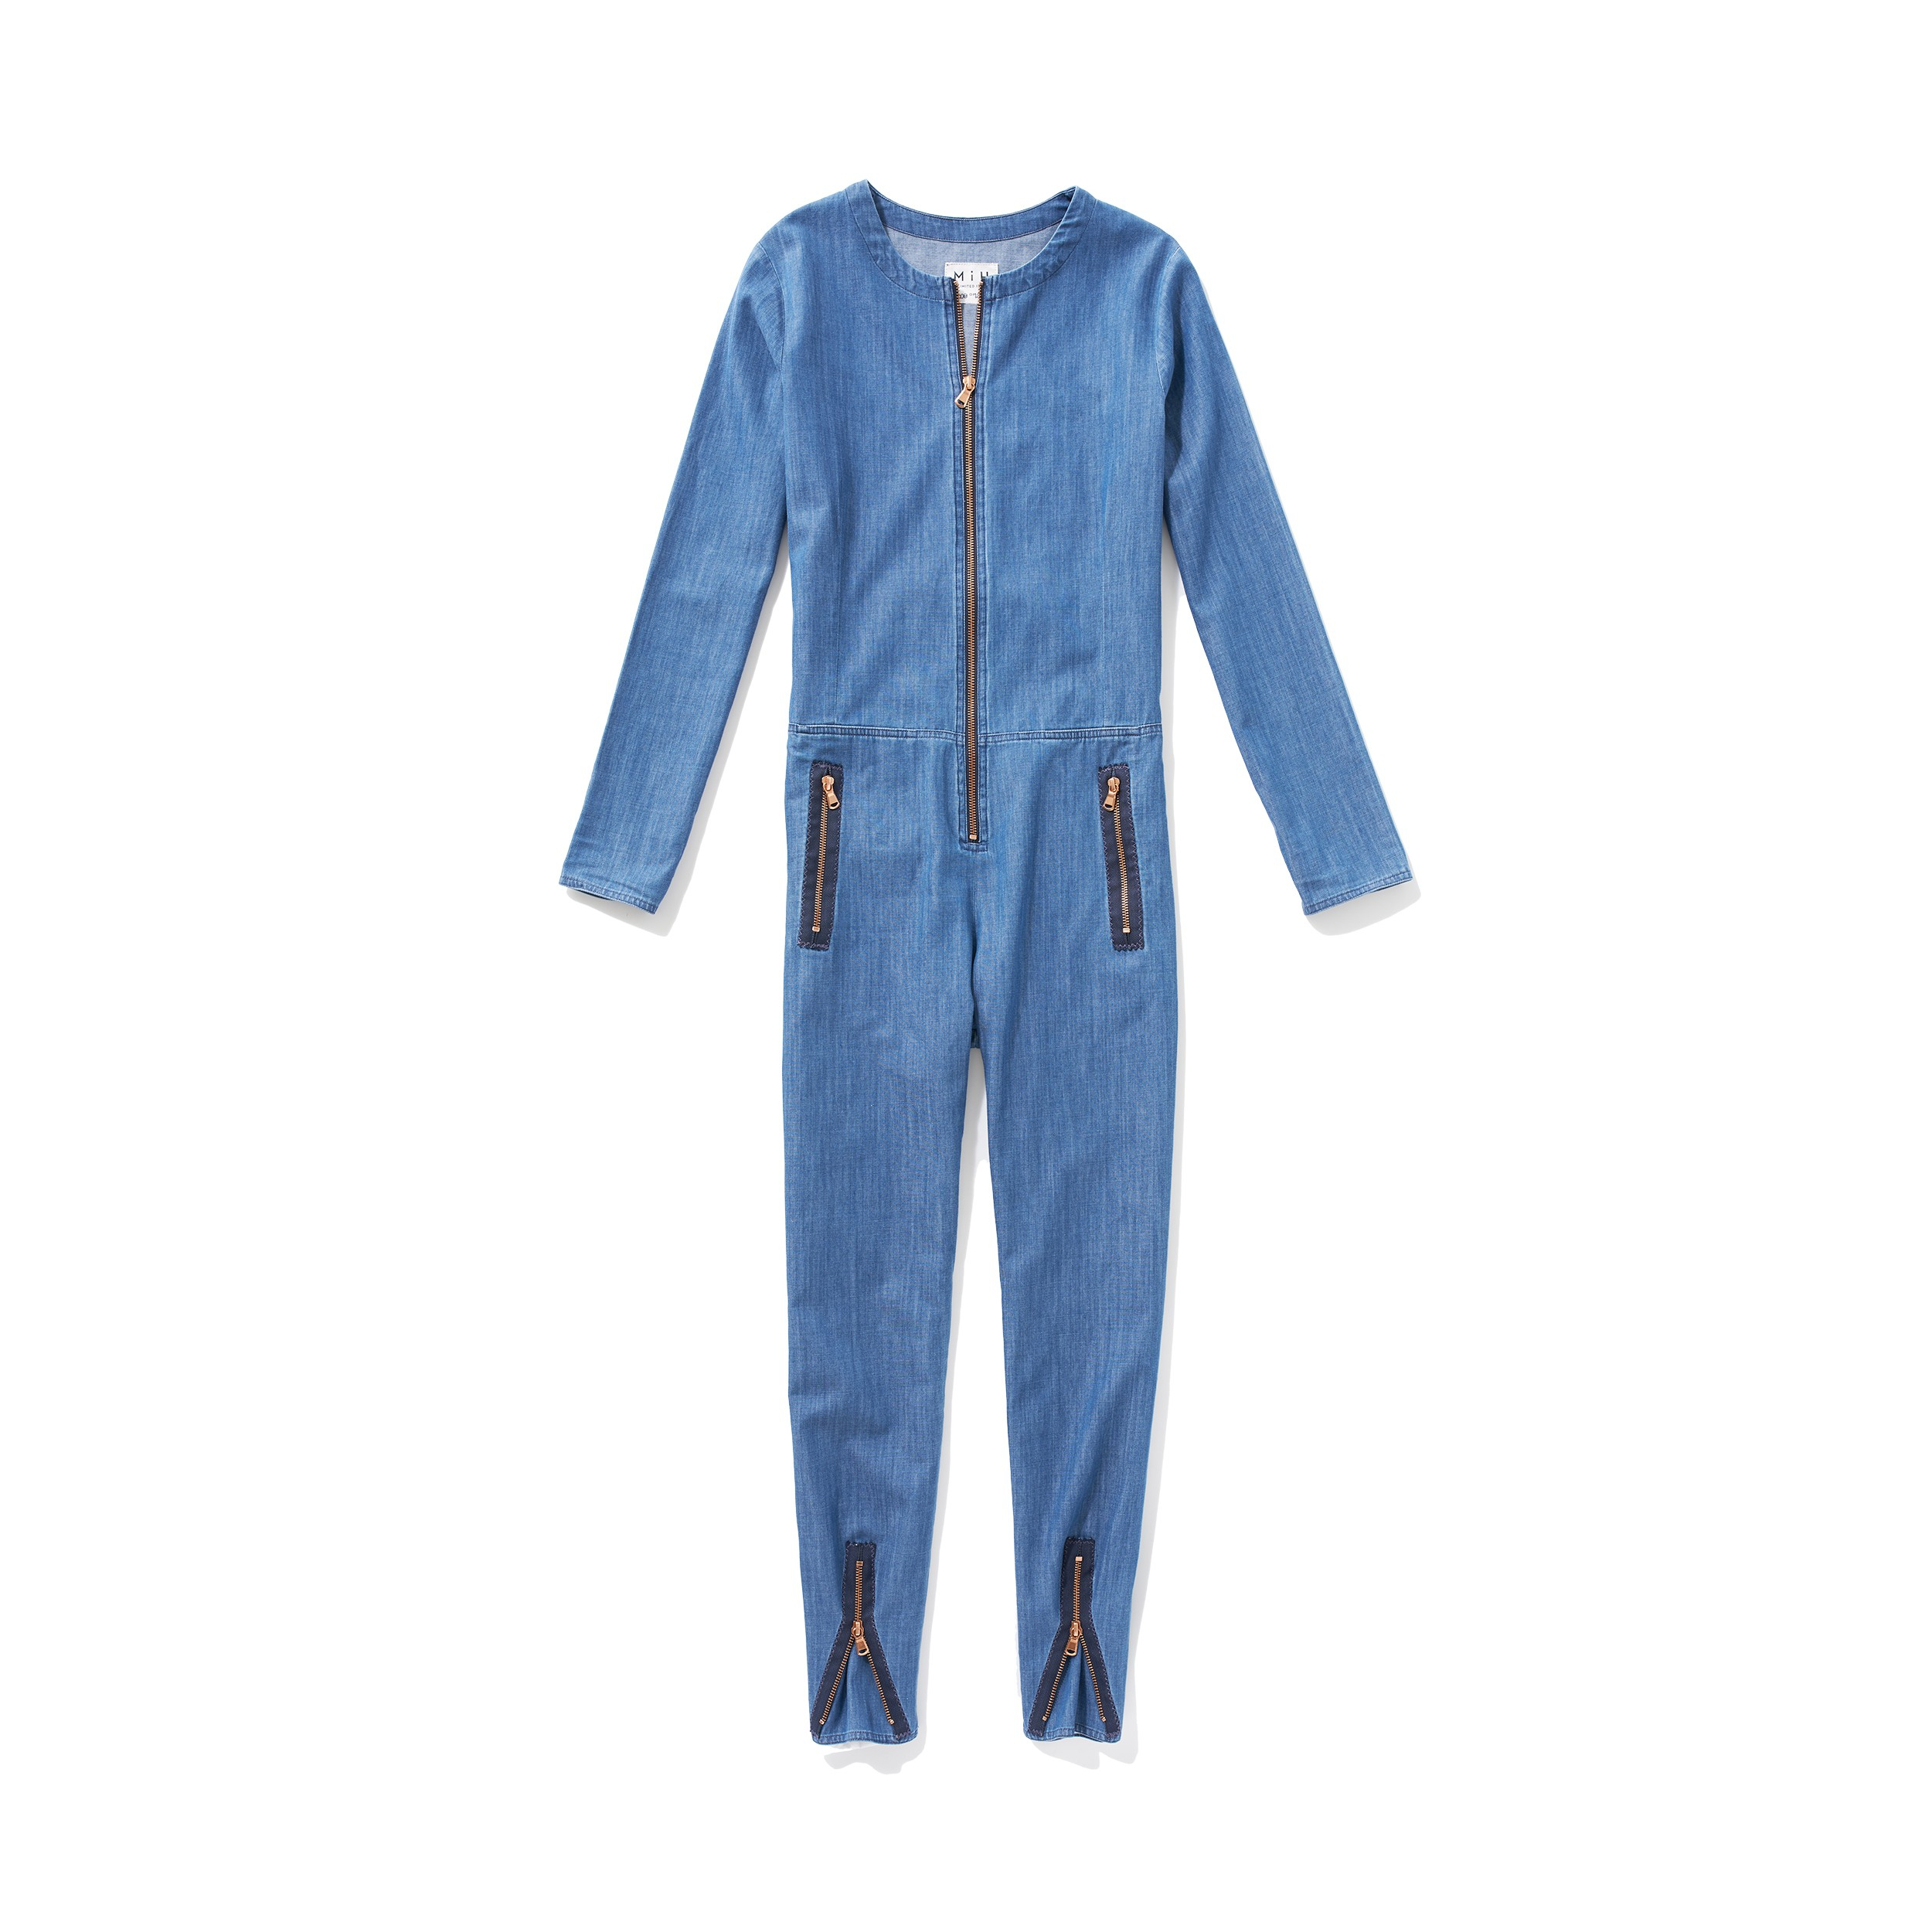 Lyst - M.I.H Jeans The Simple Boiler Suit in Blue